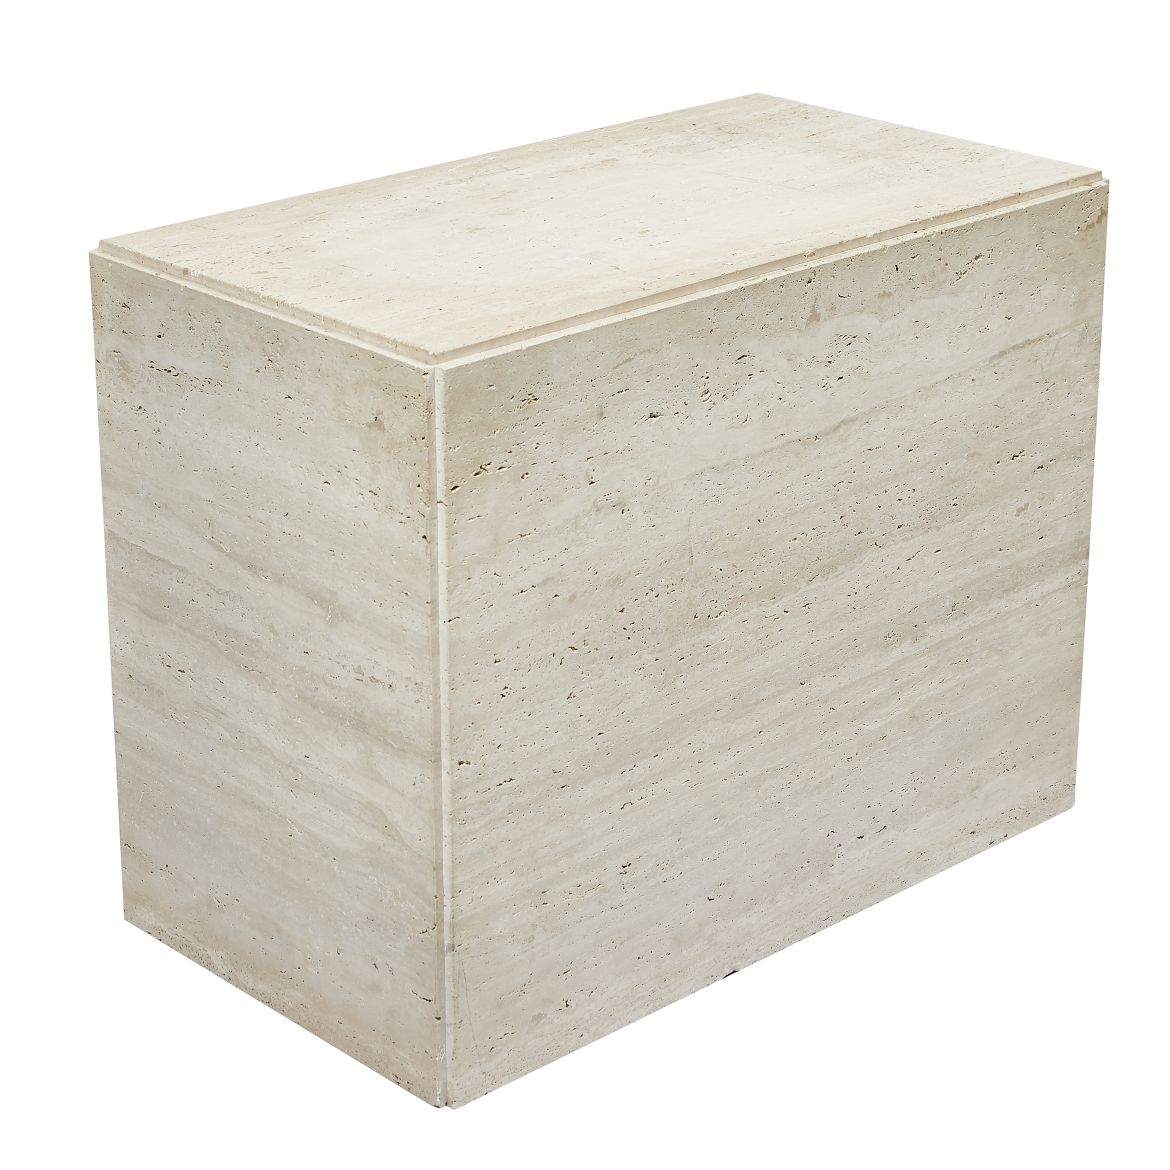 Oblong Travertine Plinth